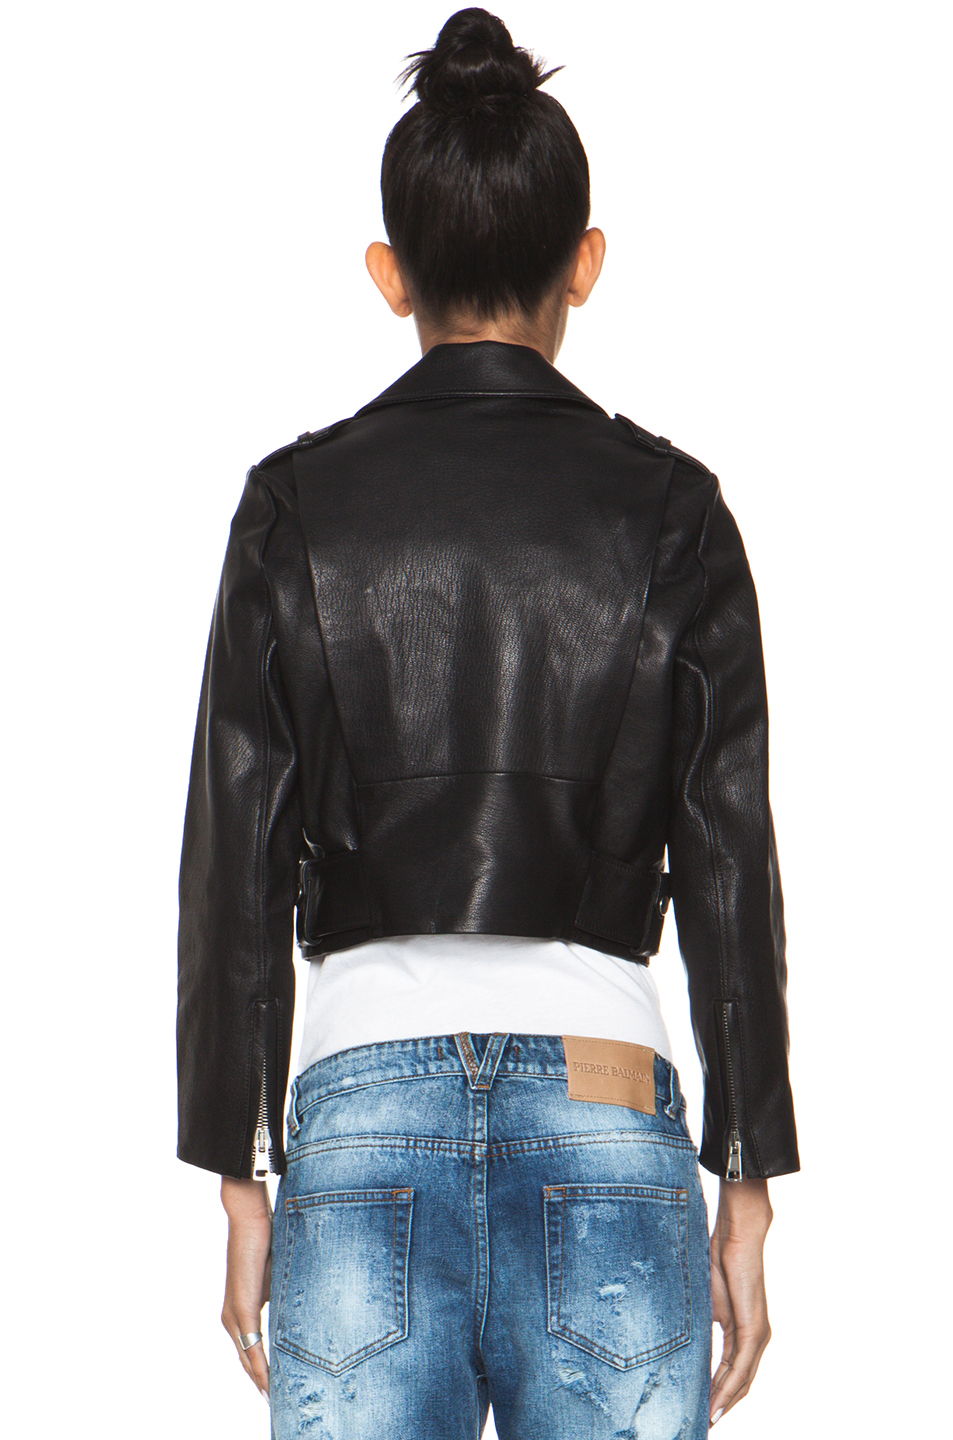 Acne Studios|Mape Leather Jacket in Black